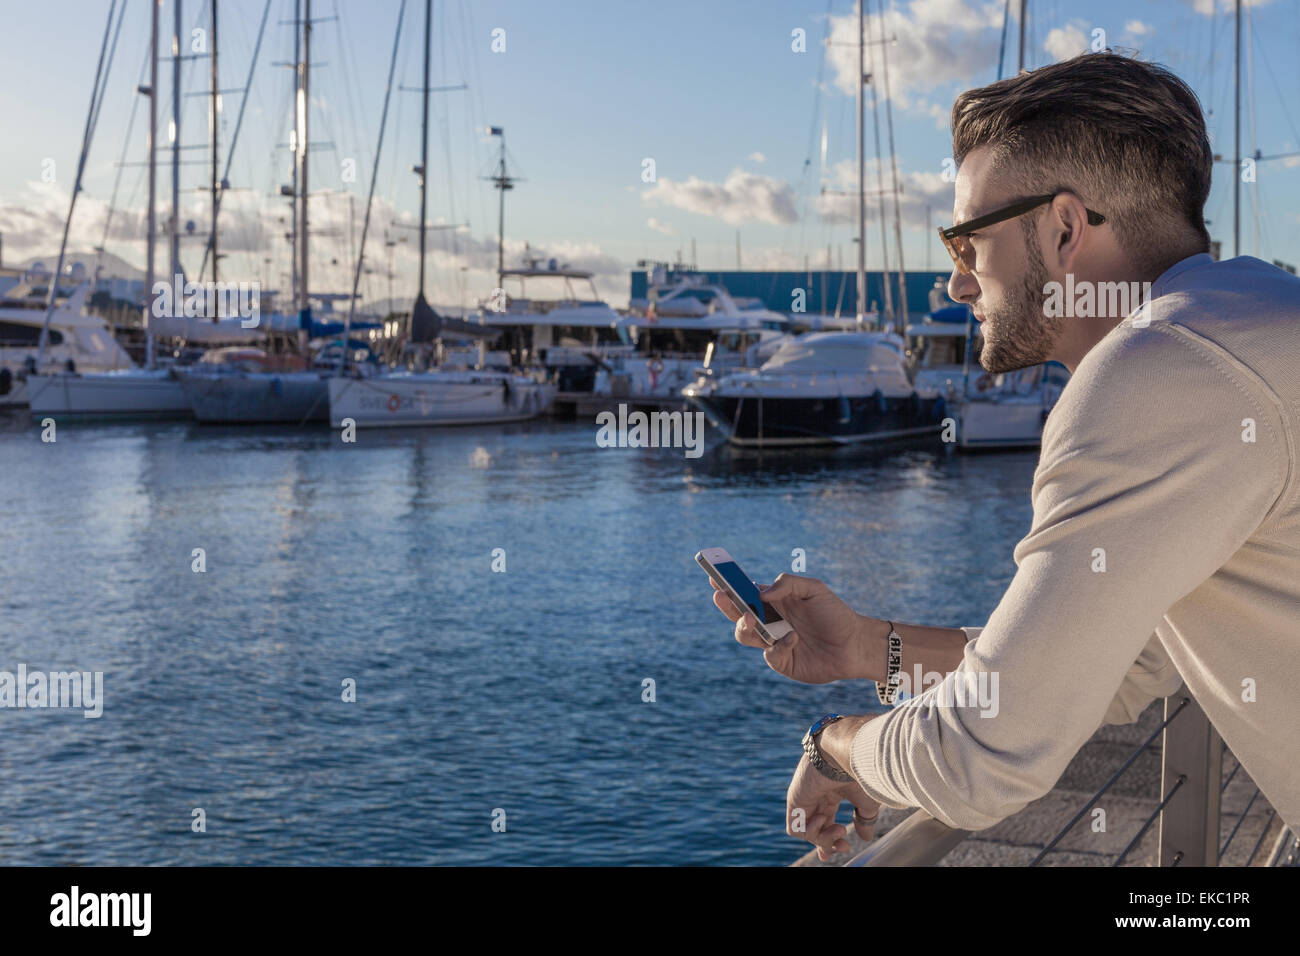 Young man using smartphone by port, Cagliari, Sardinia, Italy - Stock Image